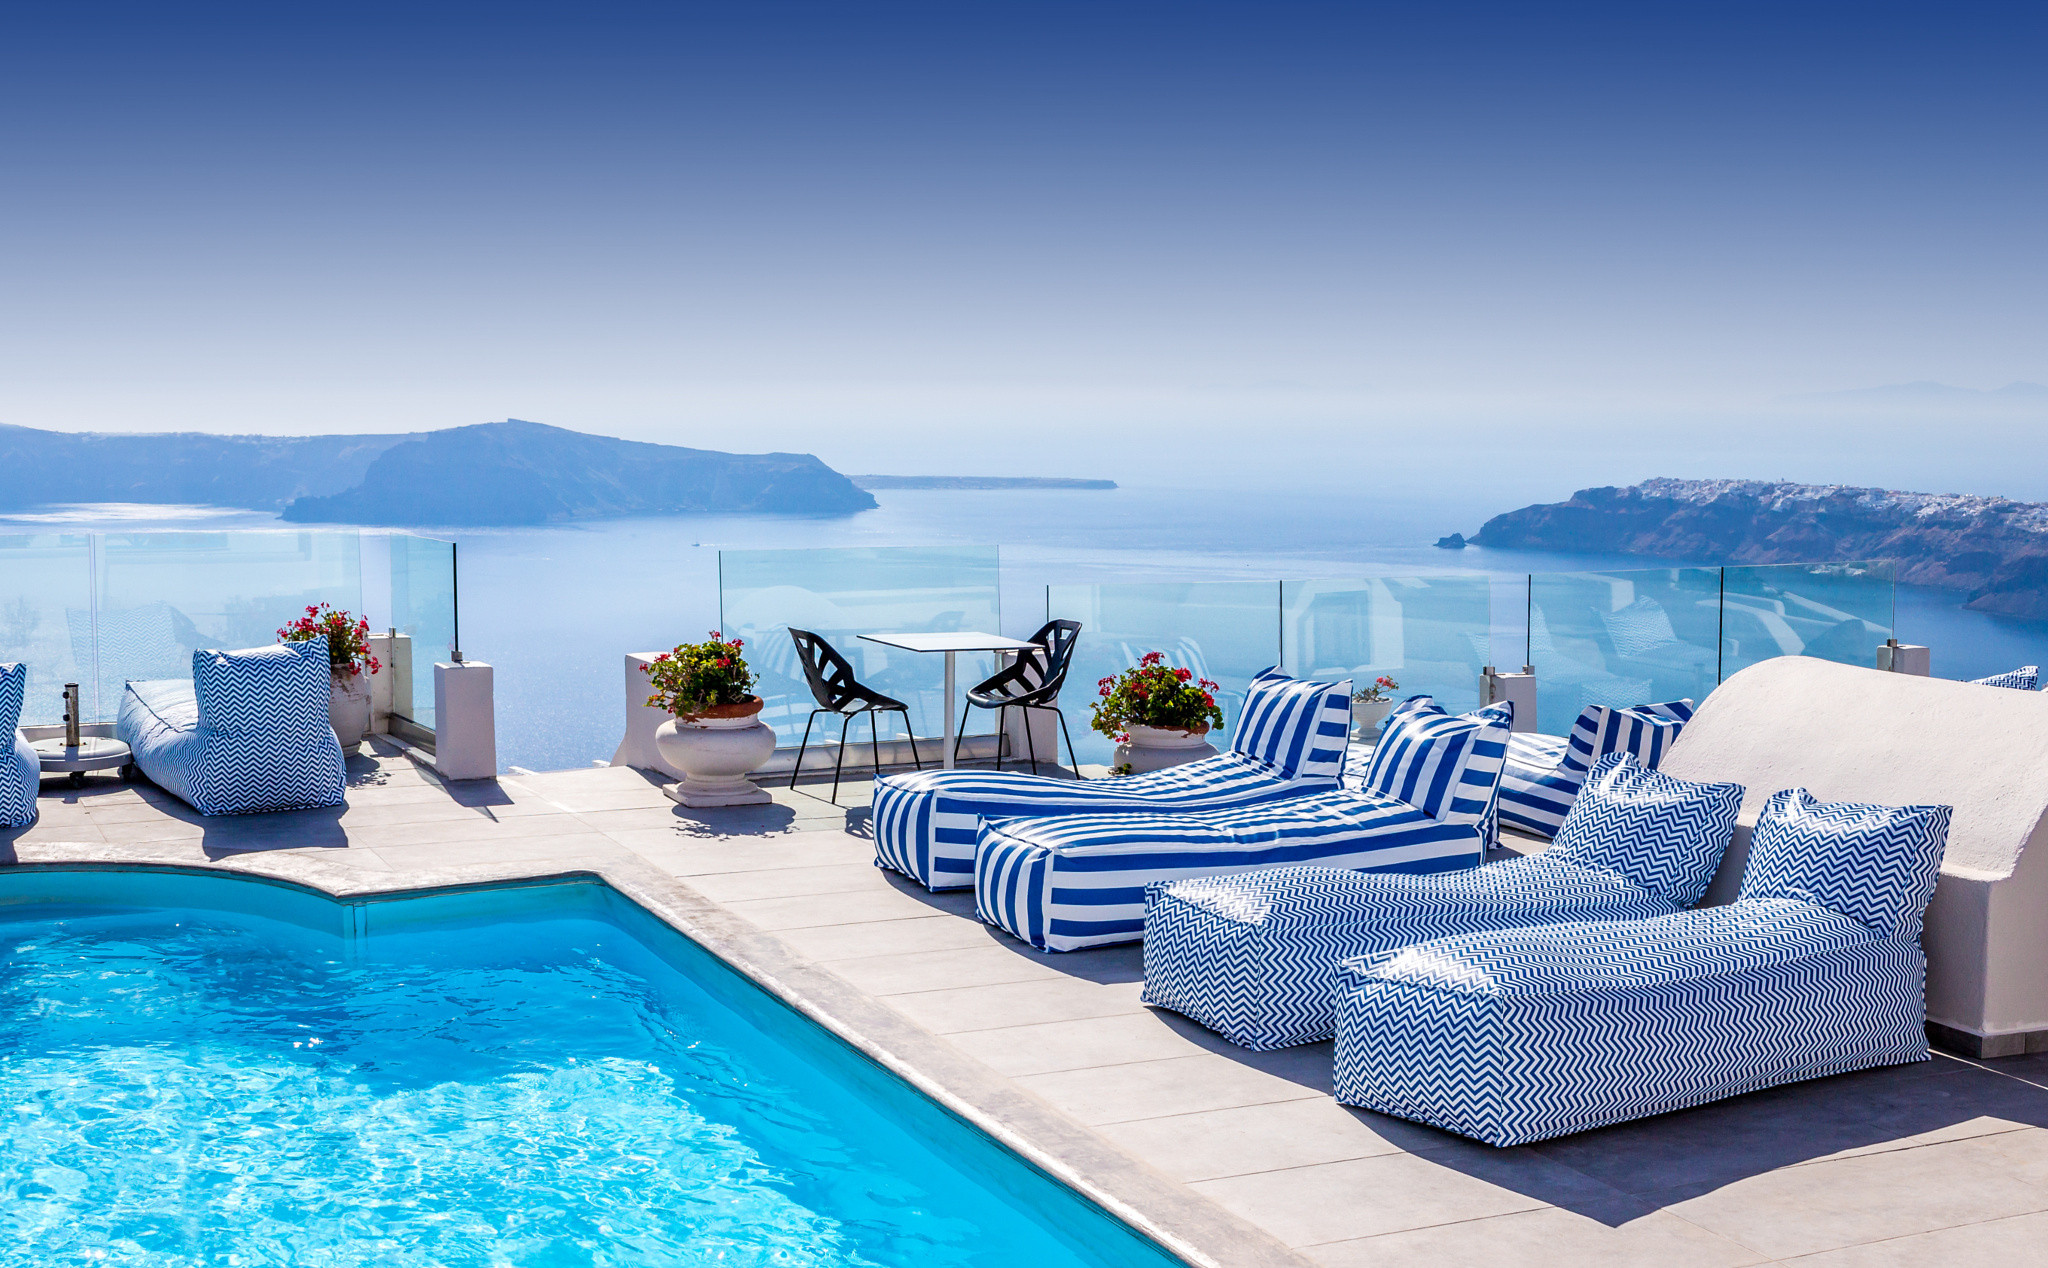 Hotel in Santorini HD wallpaper 2048x1268